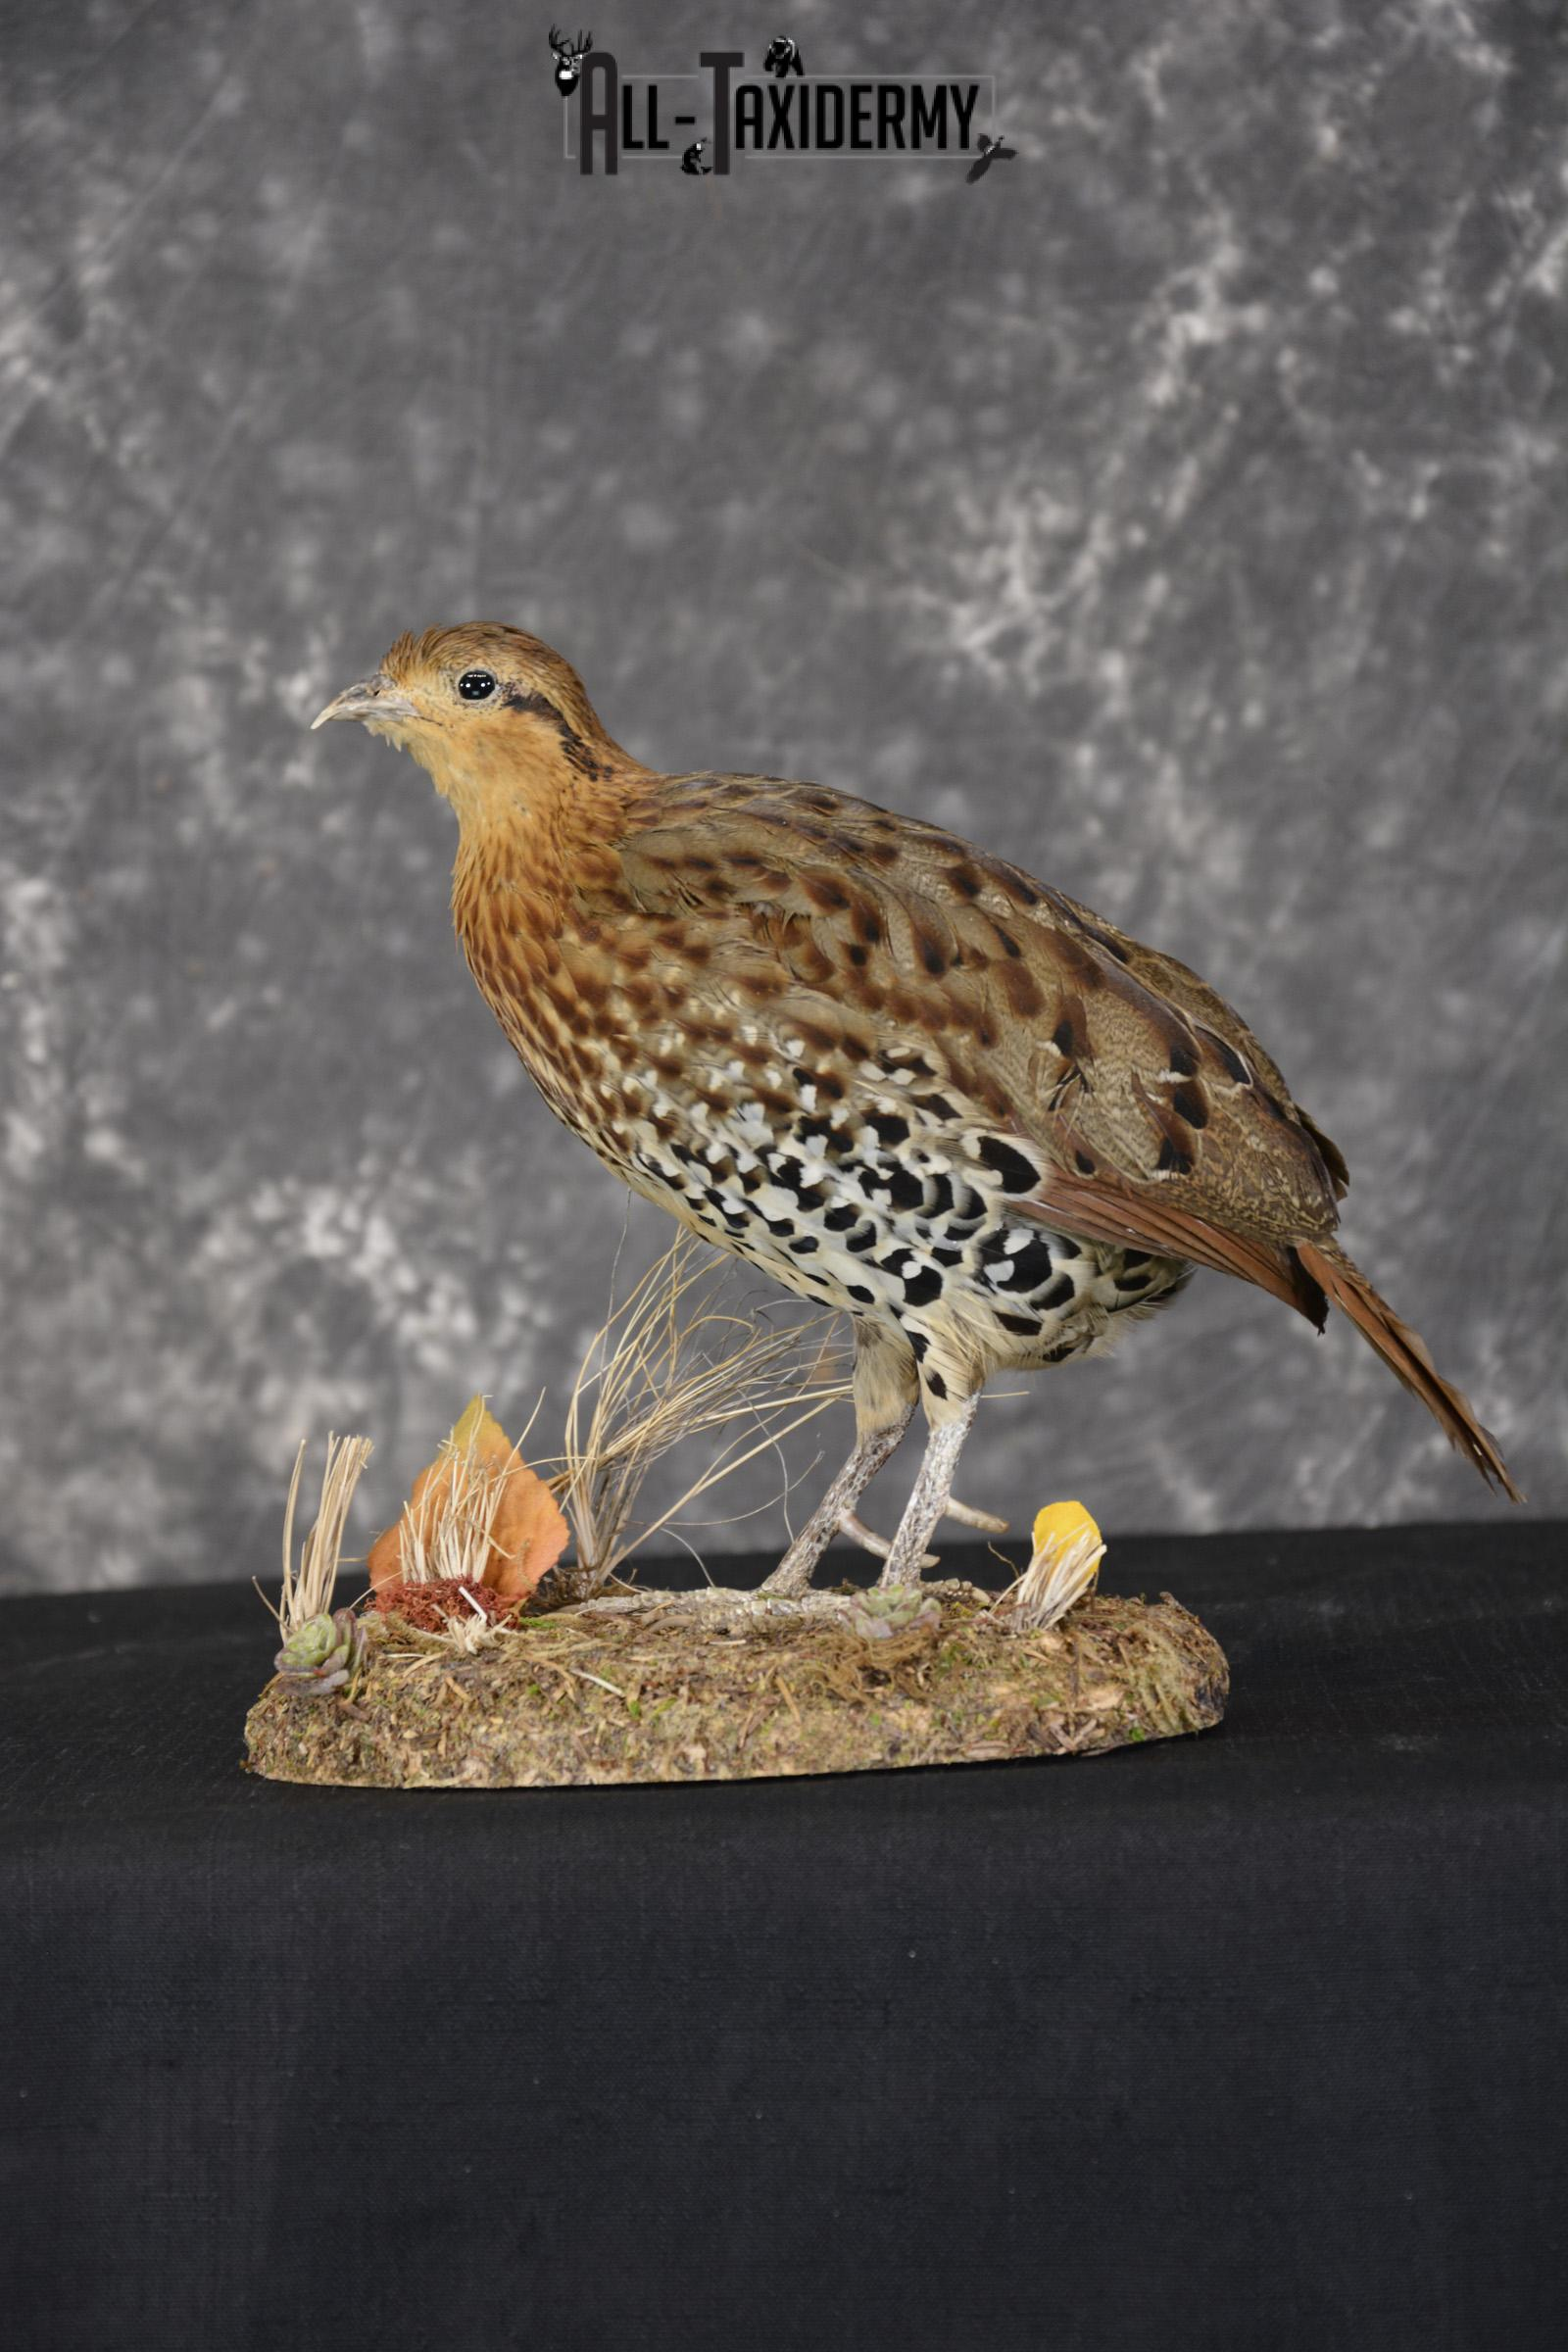 Chinese Bamboo Partridge taxidermy mount for sale SKU 1905